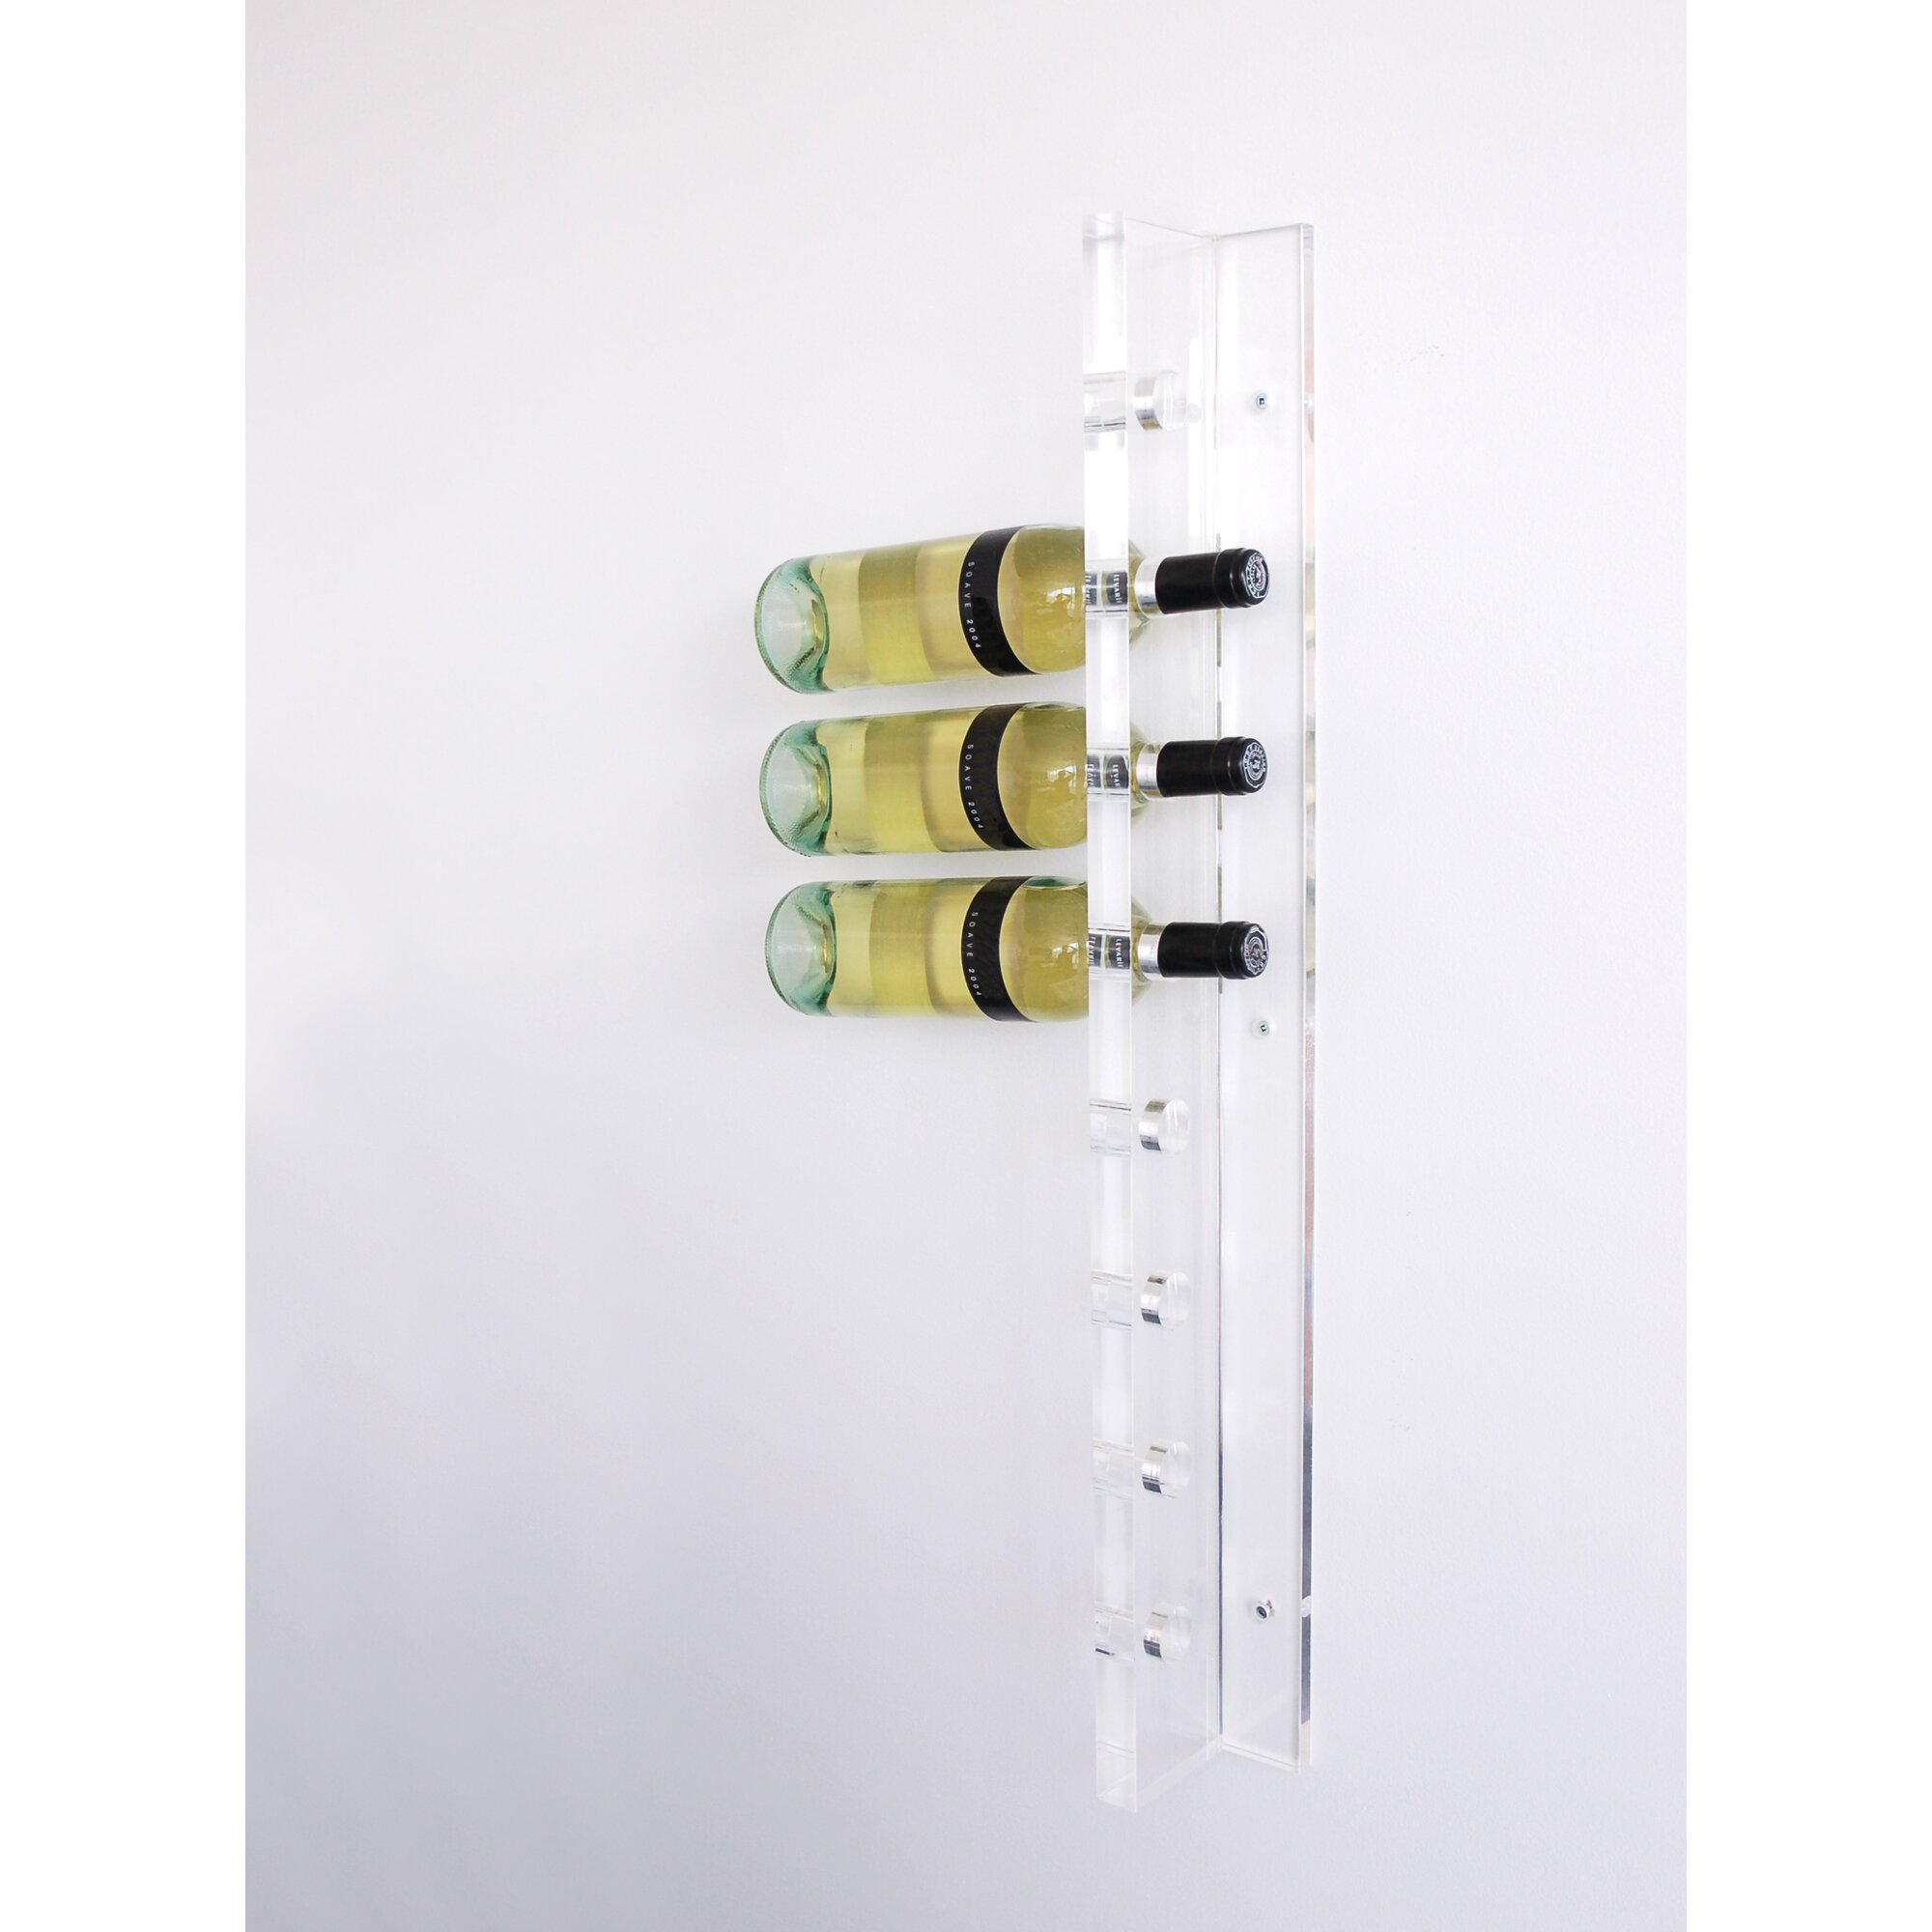 Acrylic 8 bottle wall mounted wine rack reviews allmodern for All modern accessories